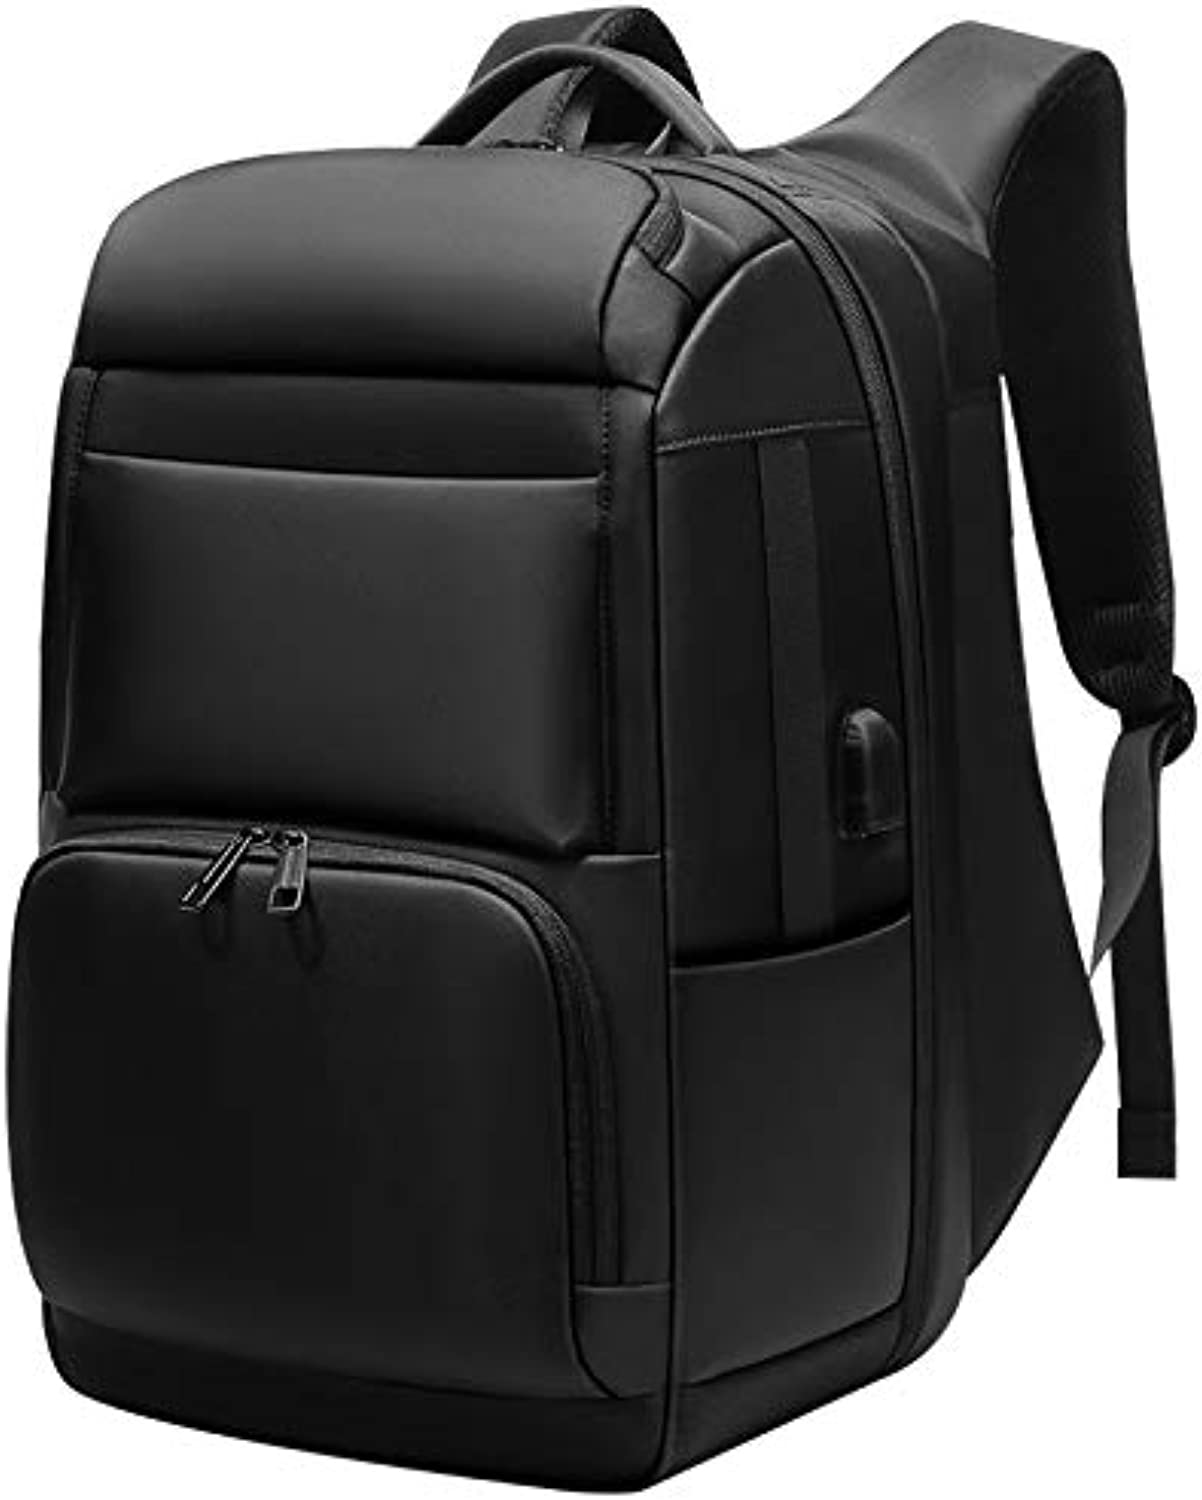 b6723c869 Men's Travel Backpack Large Capacity Junior Men's Backpack AntiTheft Pack  USB Charging Laptop Backpack Waterproof